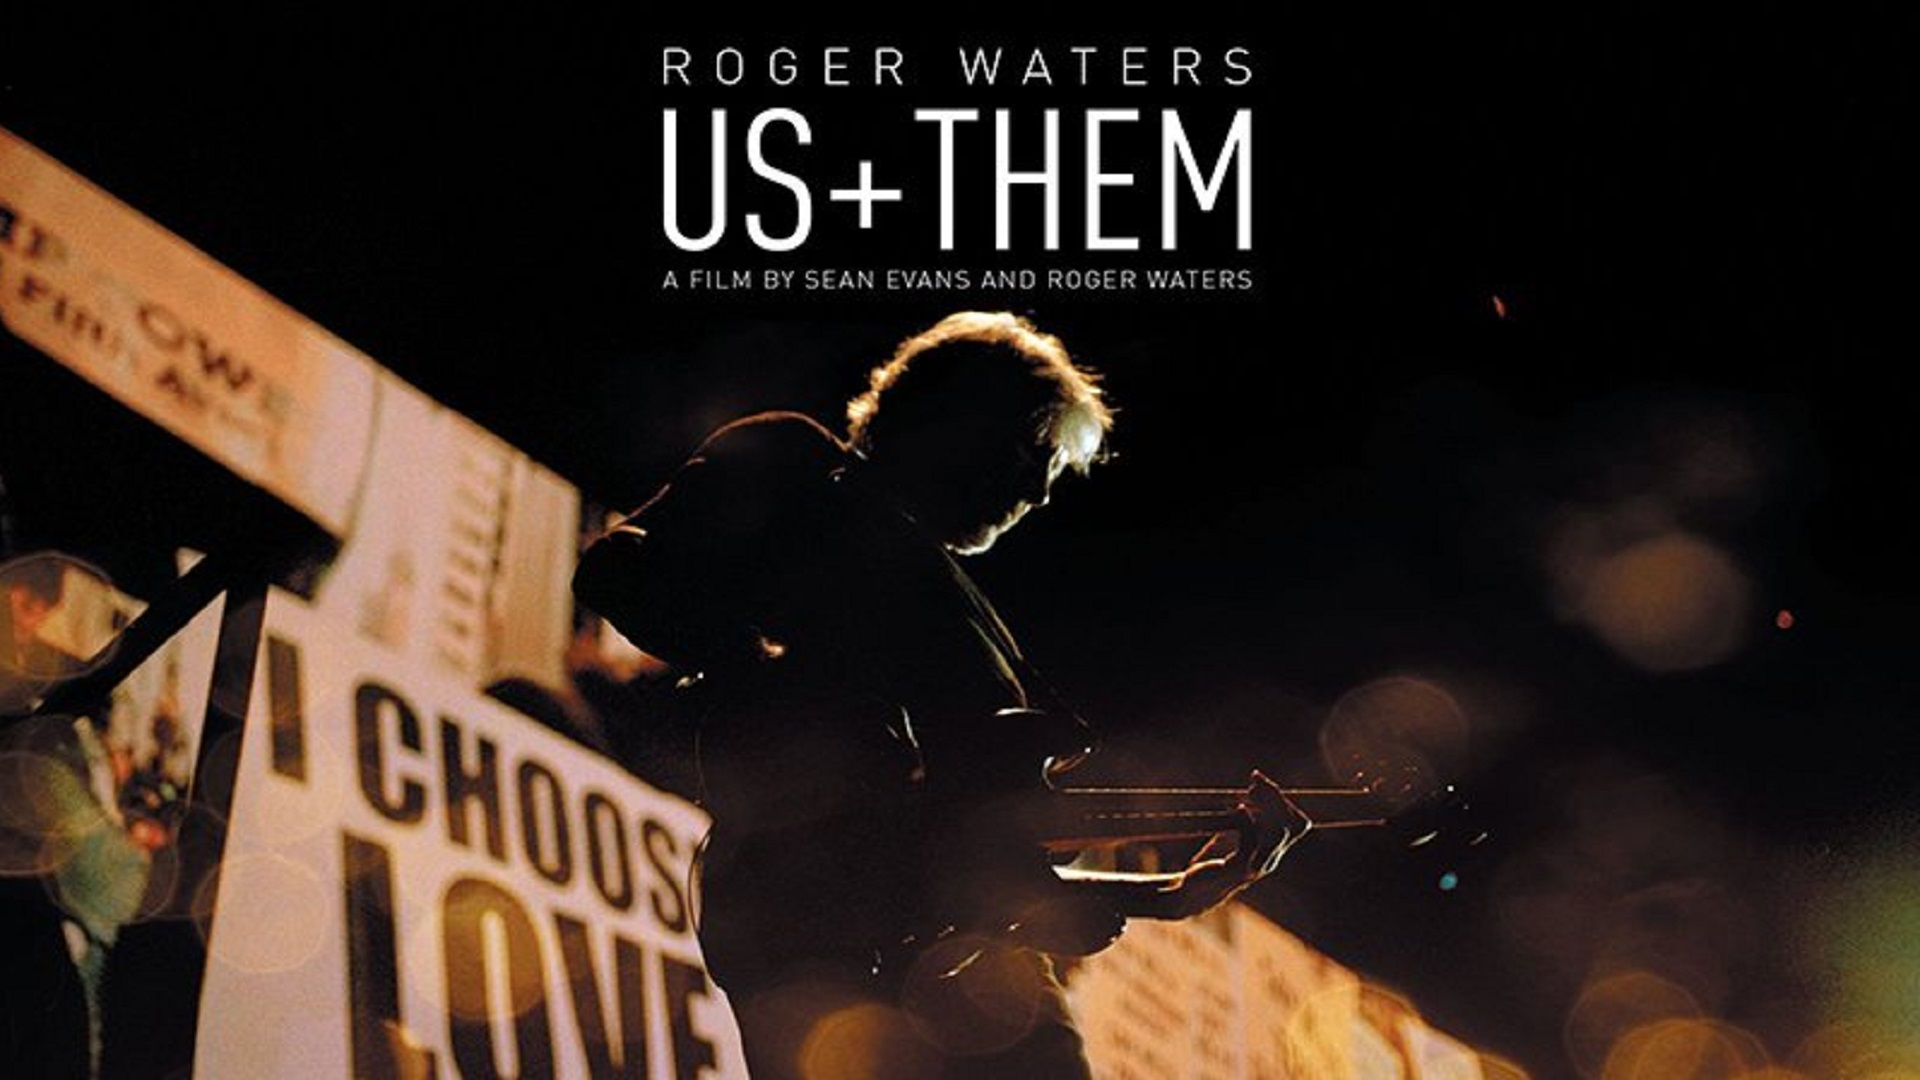 Vea el trailer Us + Them, el nuevo documental de la gira de Roger Waters